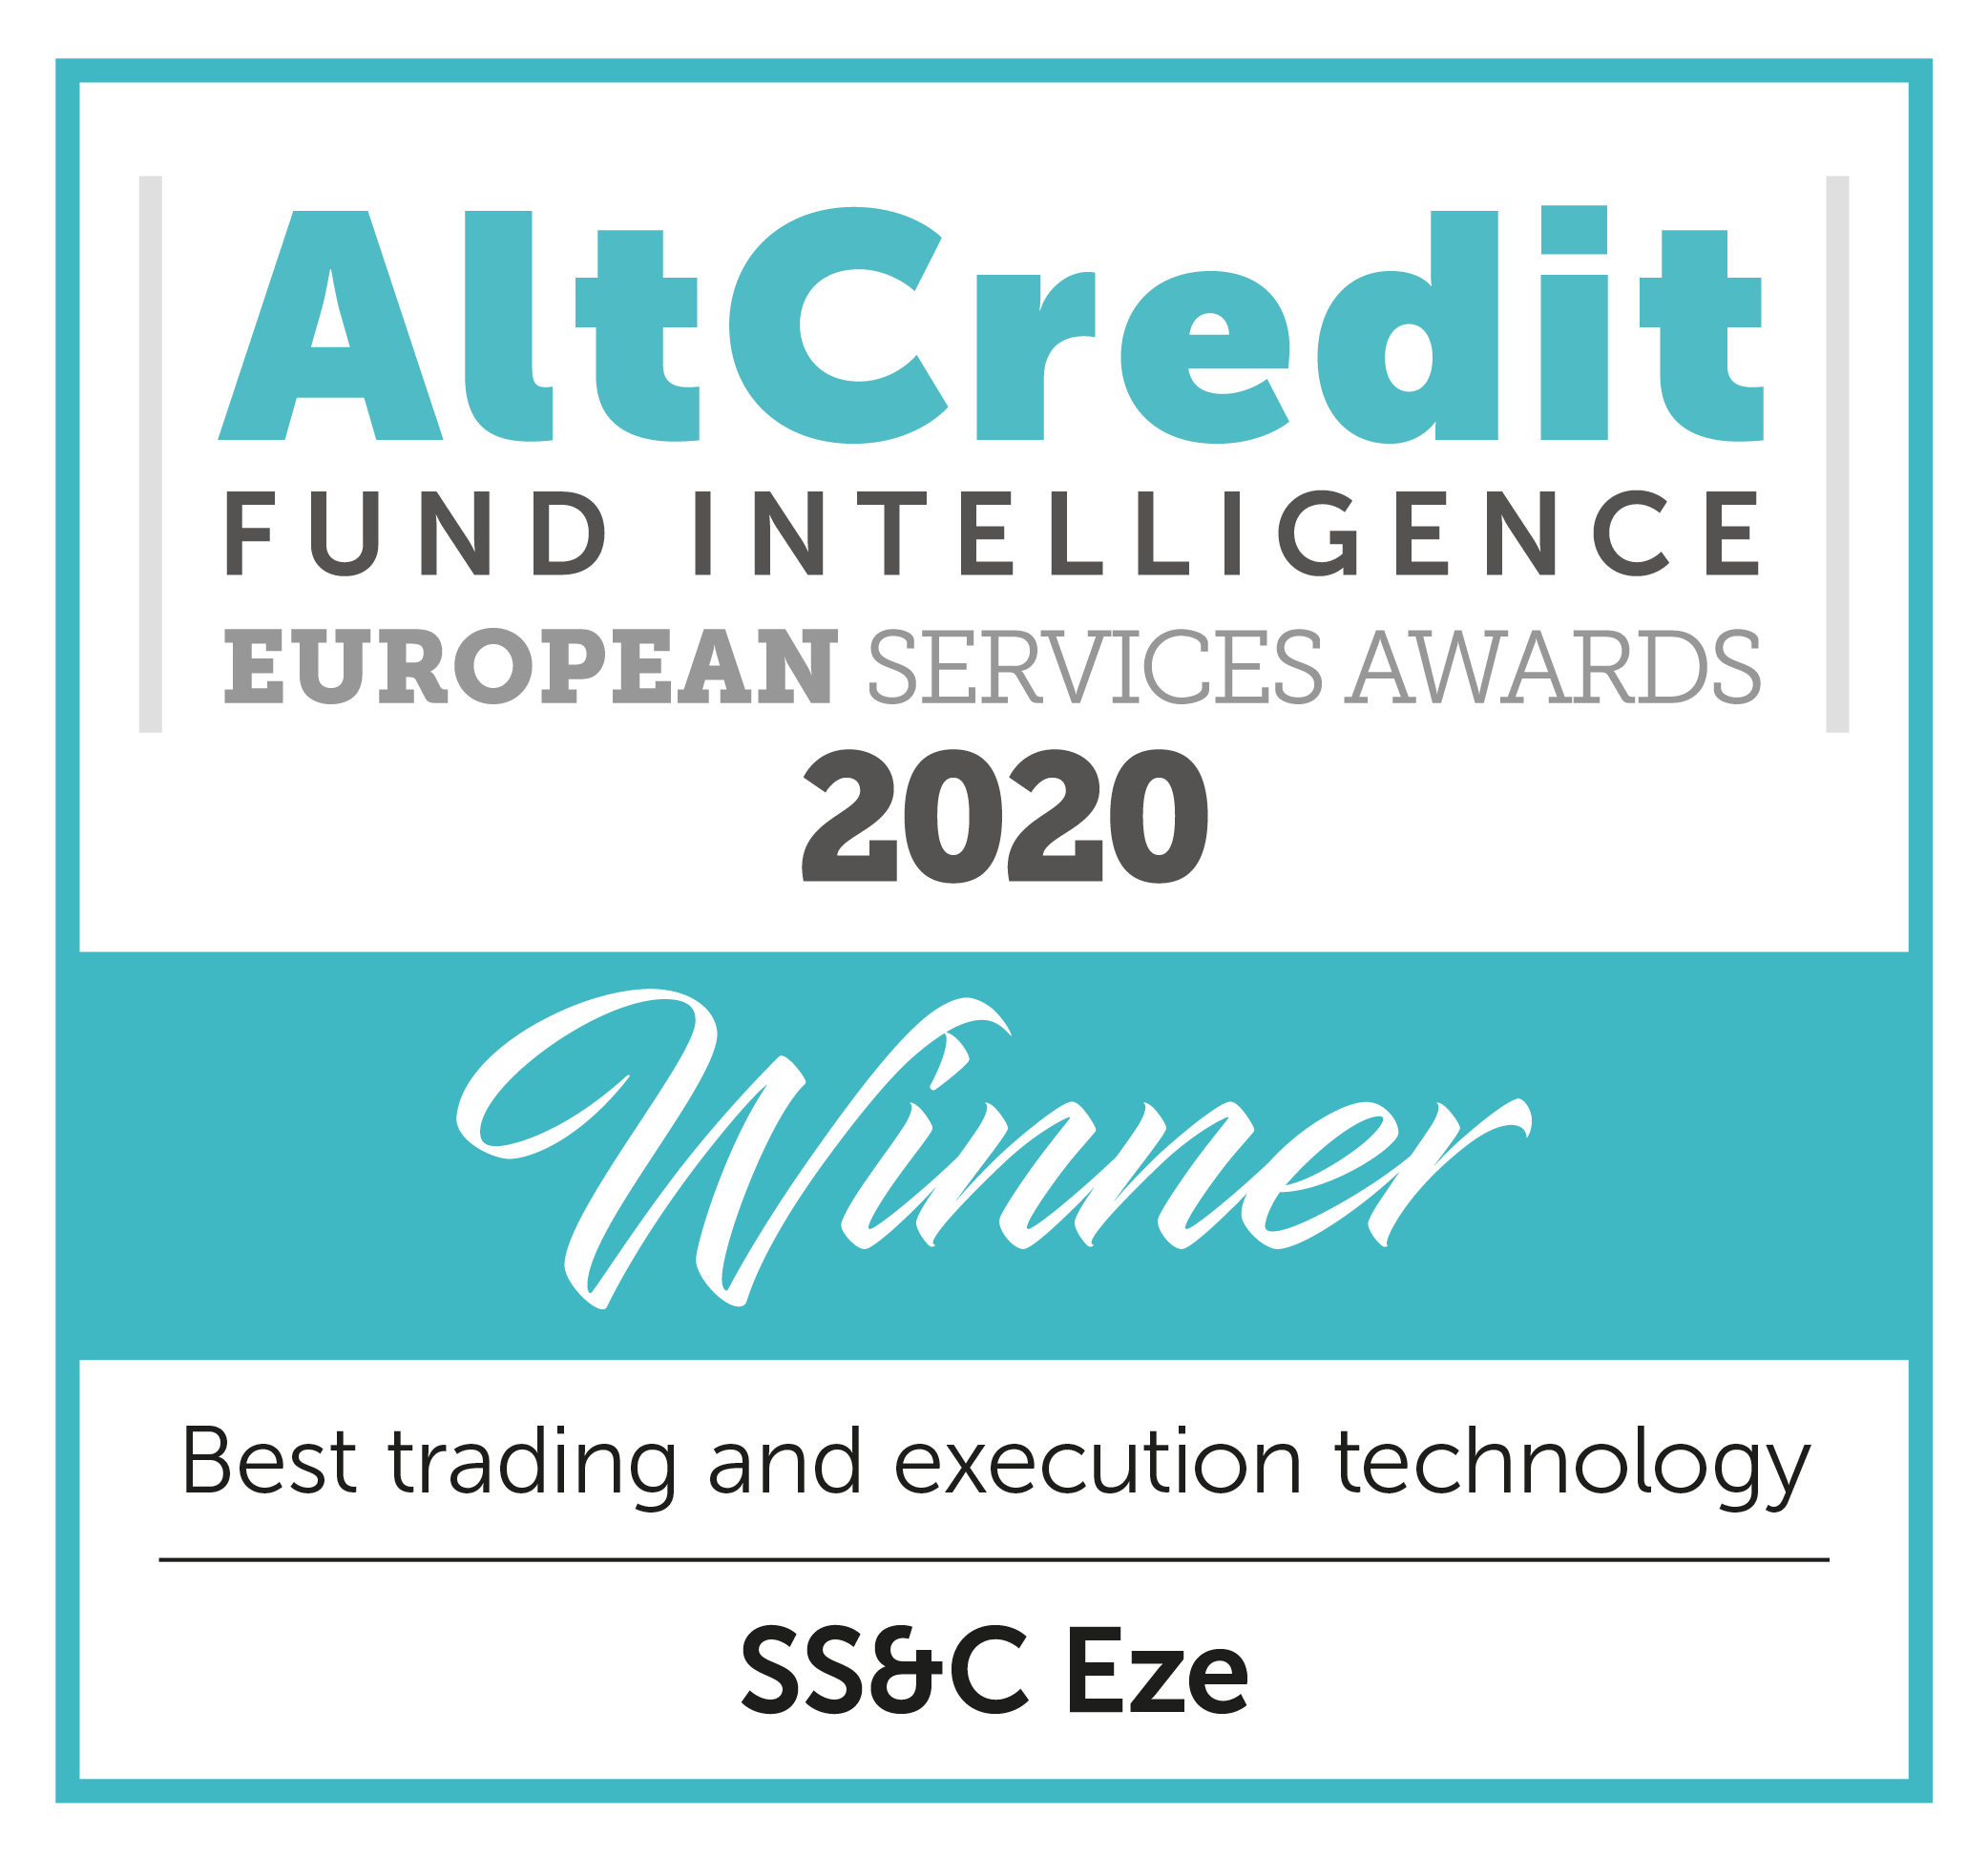 Alt Credit Fund Intelligence European Services Awards 2020